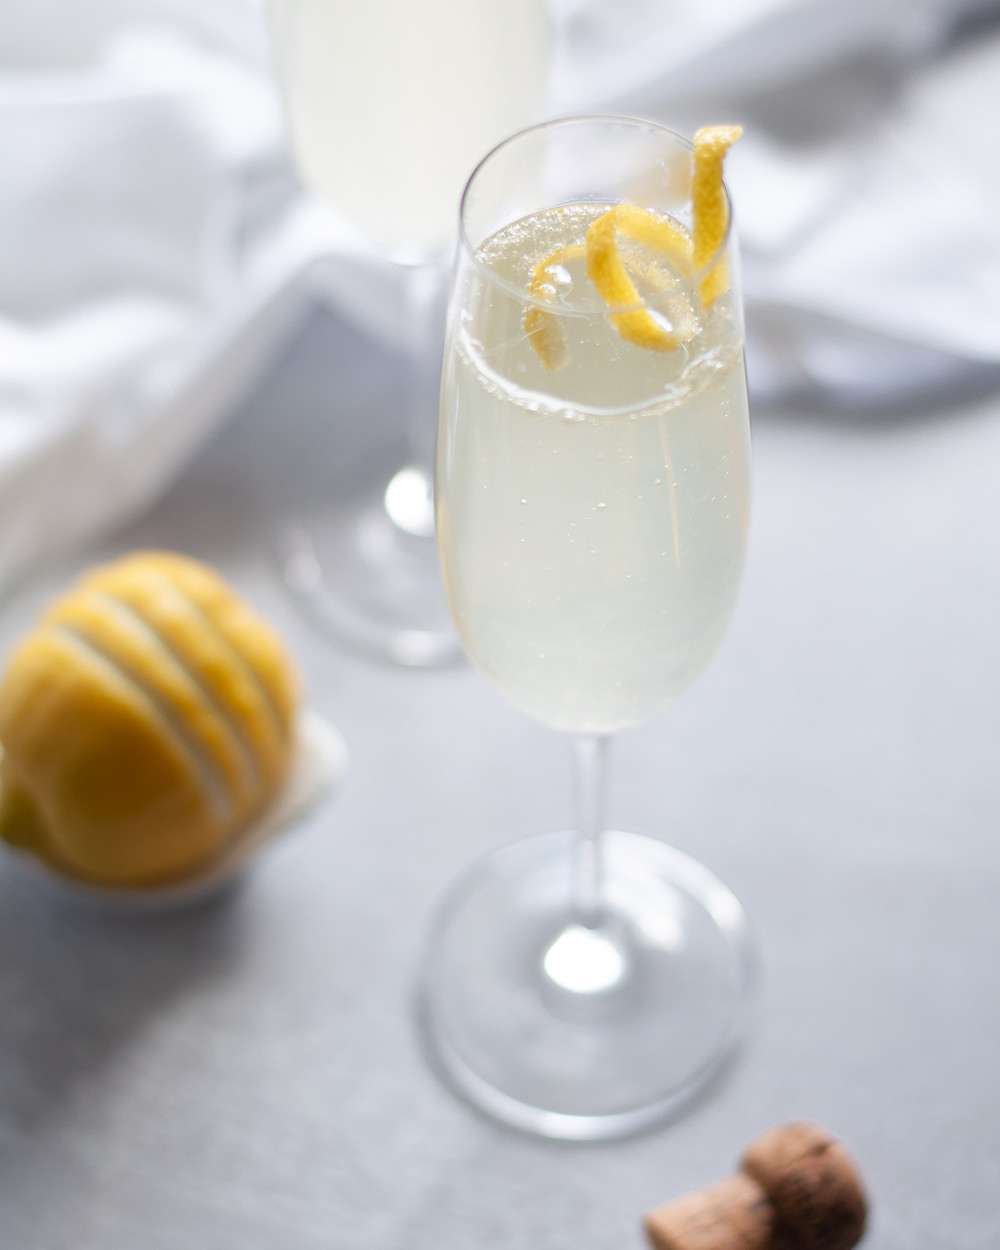 Champagne flute filled with this French 75 recipe and garnished with a lemon twist. Around the glass is a champagne cork, lemon, a 2nd cocktail, and a white napkin.